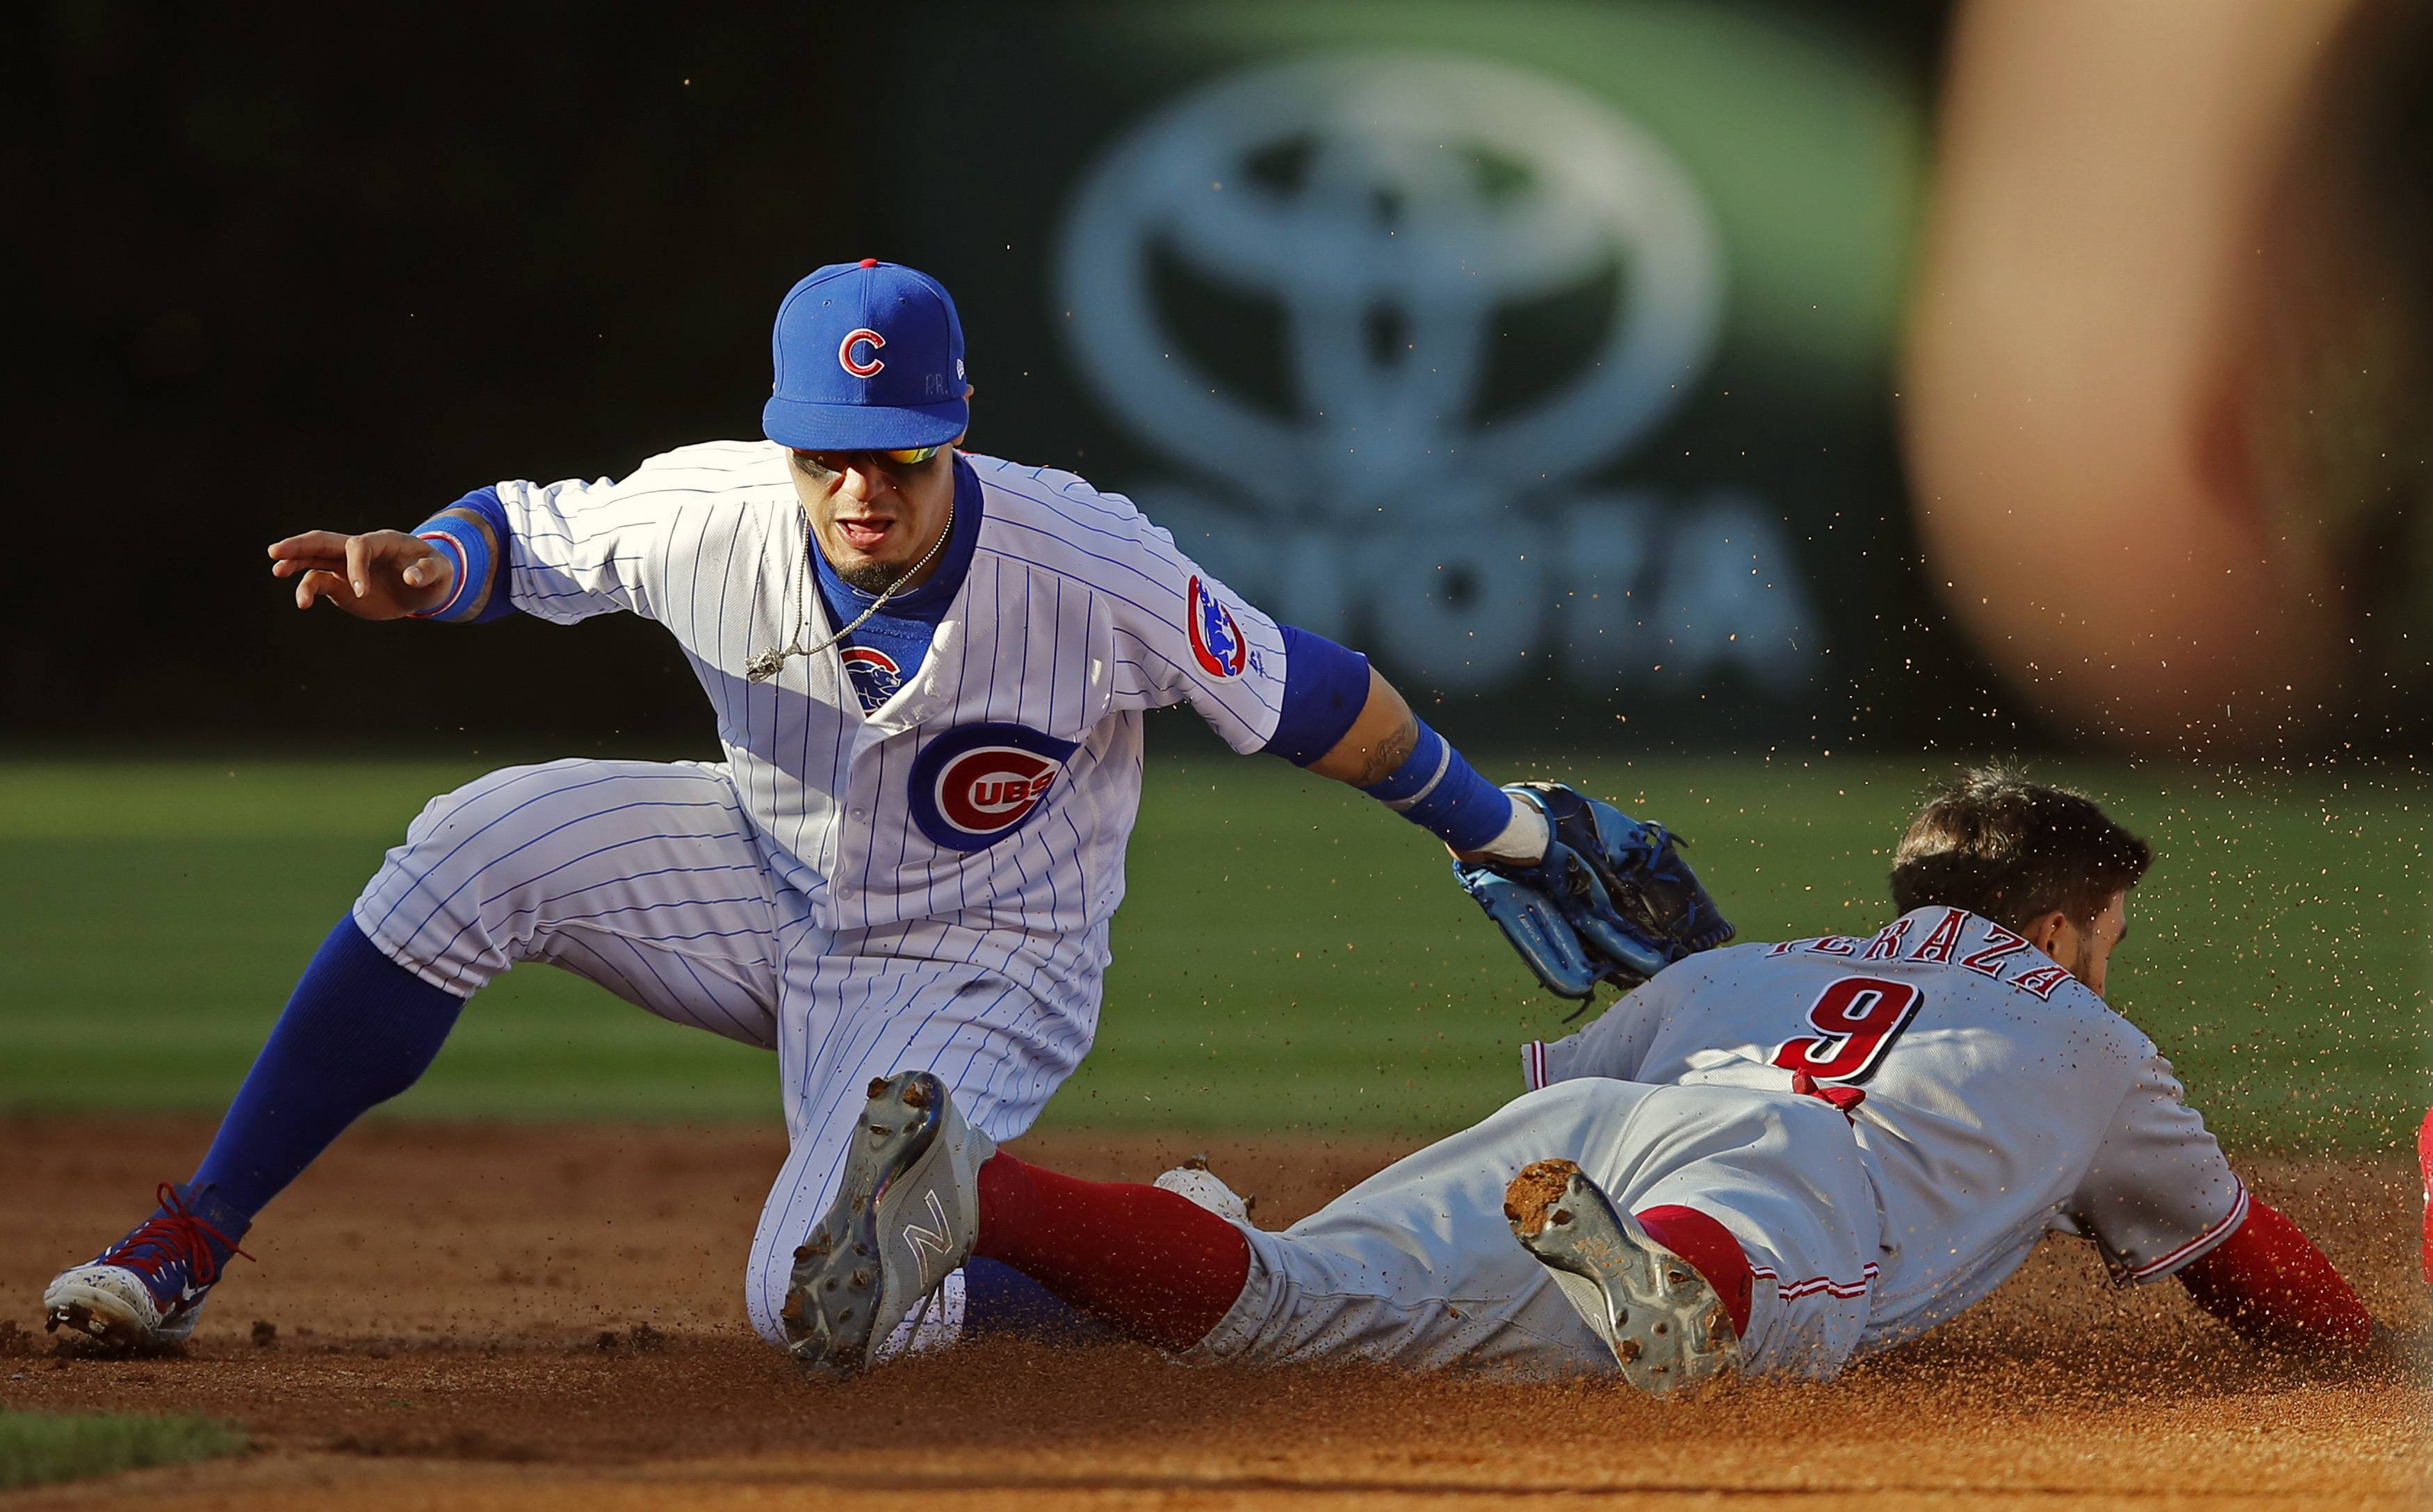 Chicago Cubs' Javier Baez, left, tags out Cincinnati Reds' Jose Peraza attempting to steal second base during the fifth inning of a baseball game Saturday, Sept. 30, 2017, in Chicago.